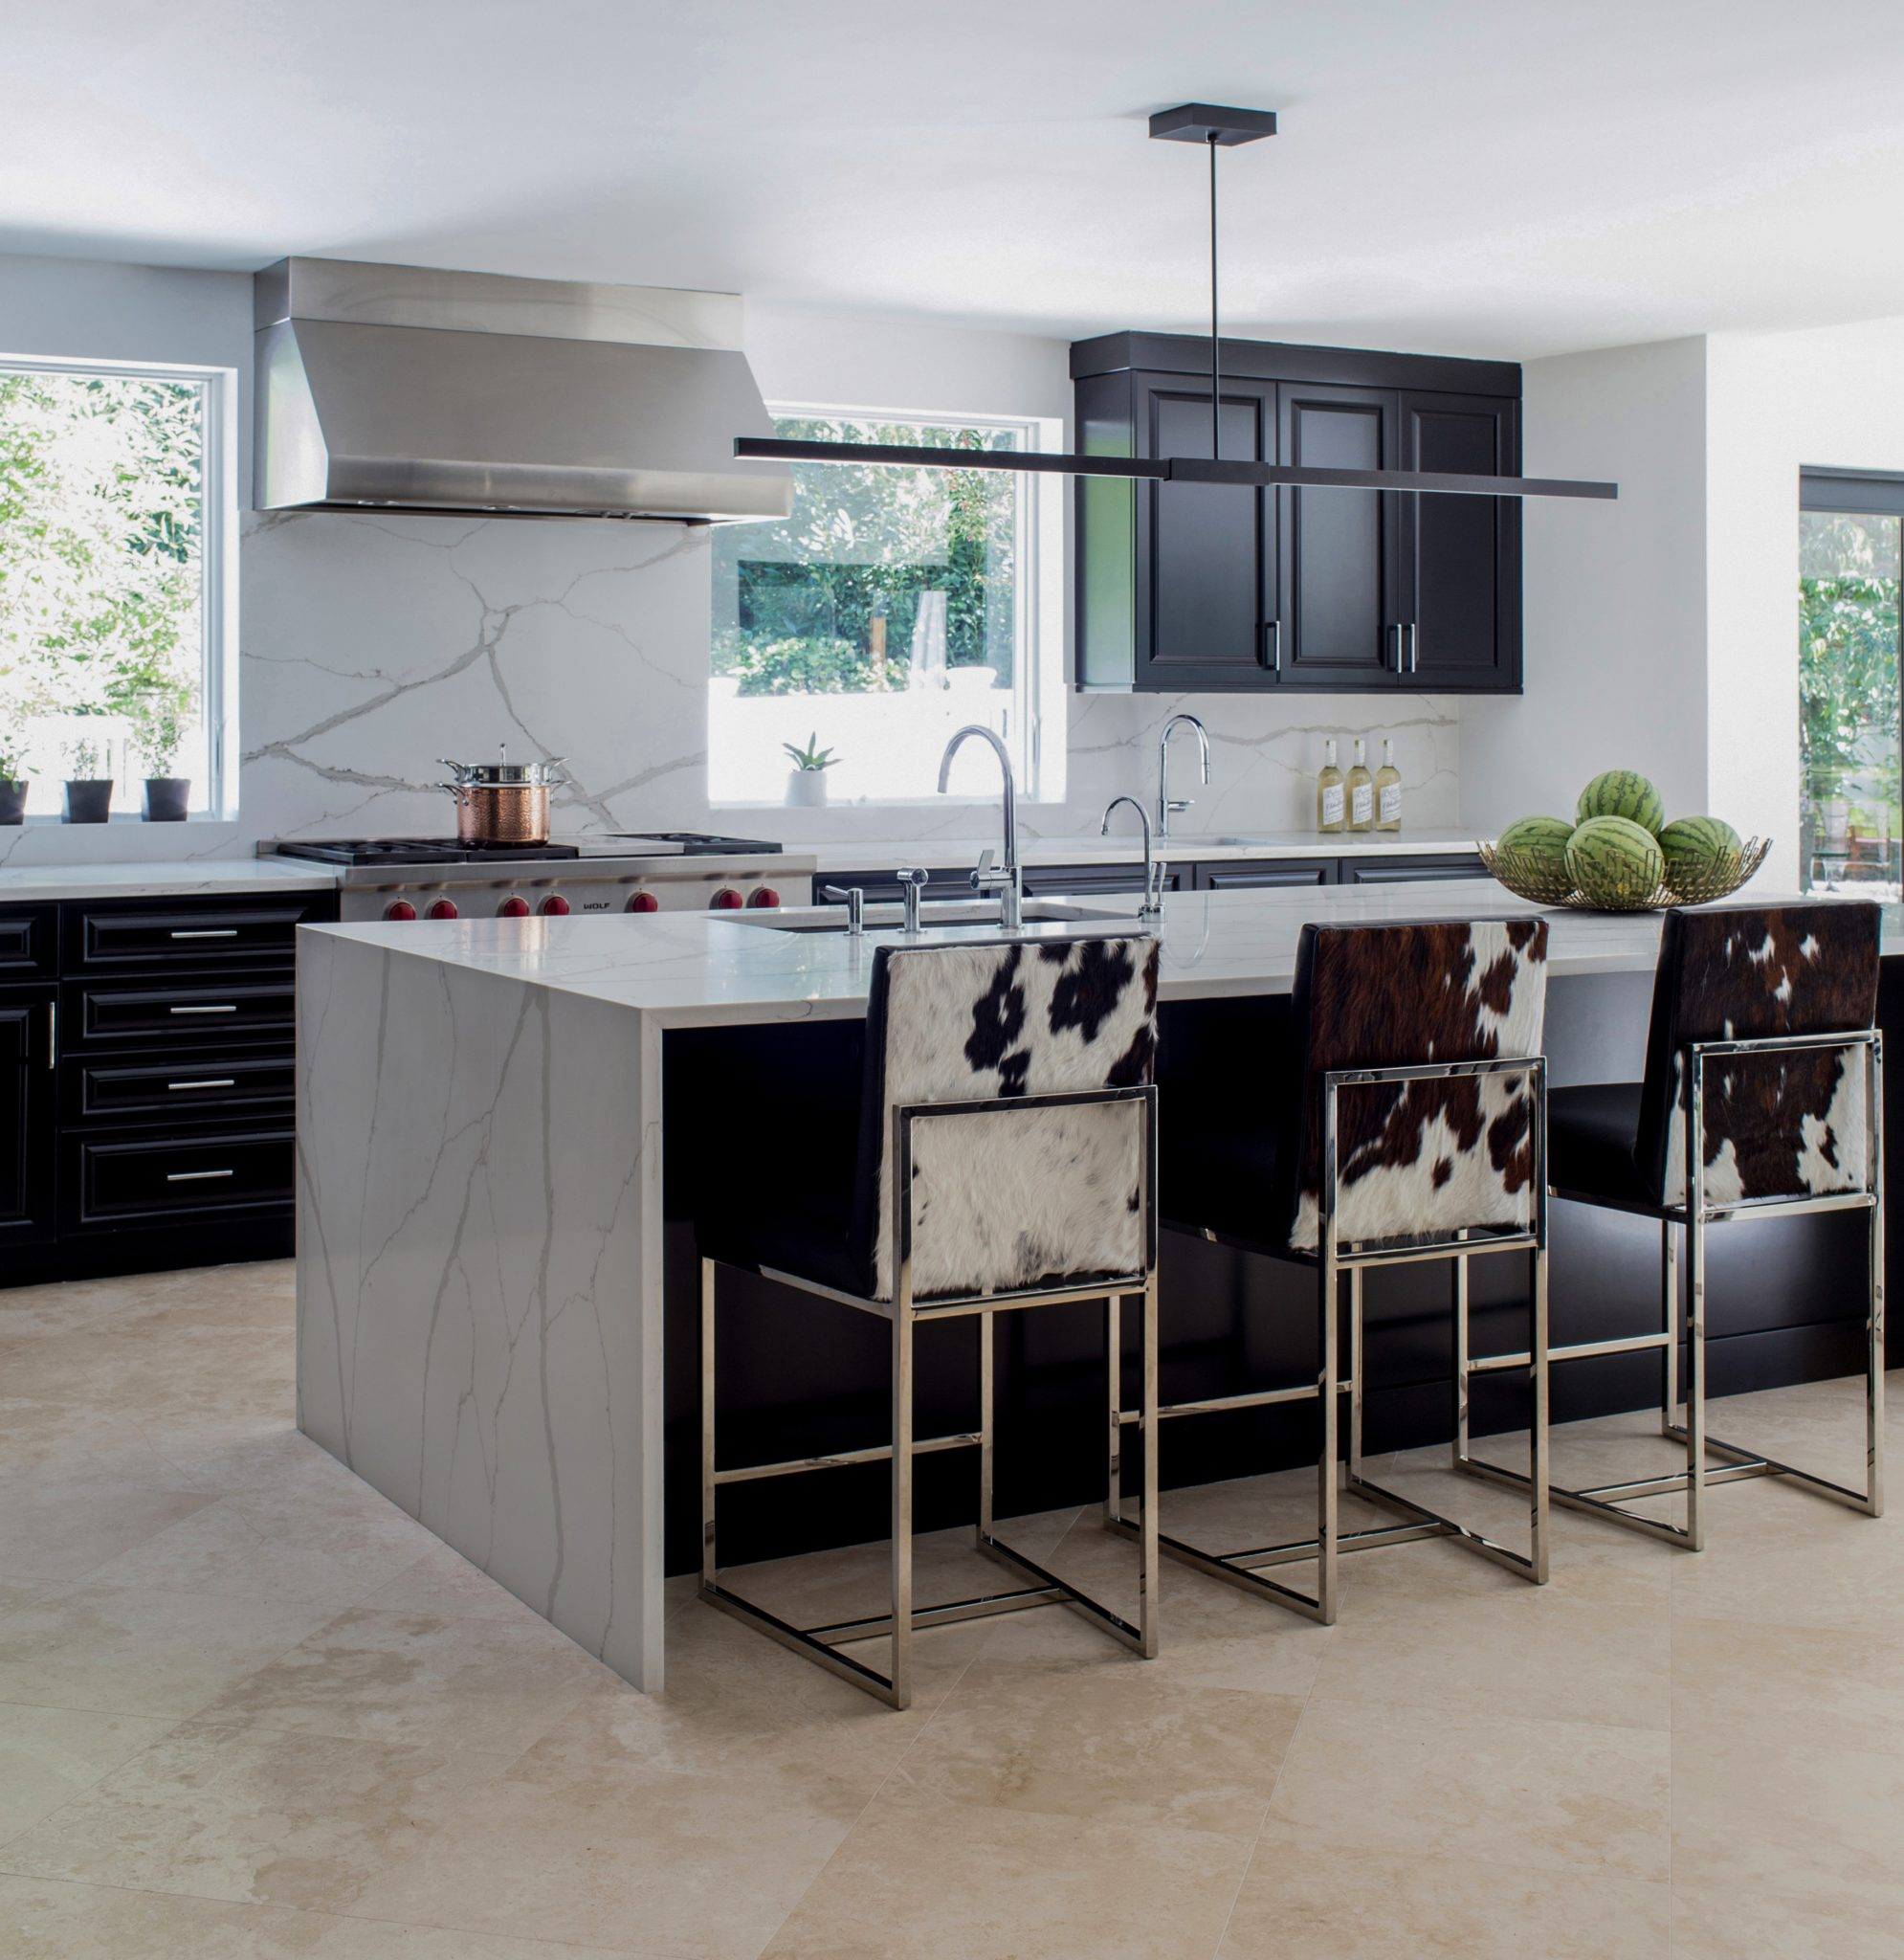 Custom counter stools in contemporary black kitchen with waterfall island by Abaca Interiors